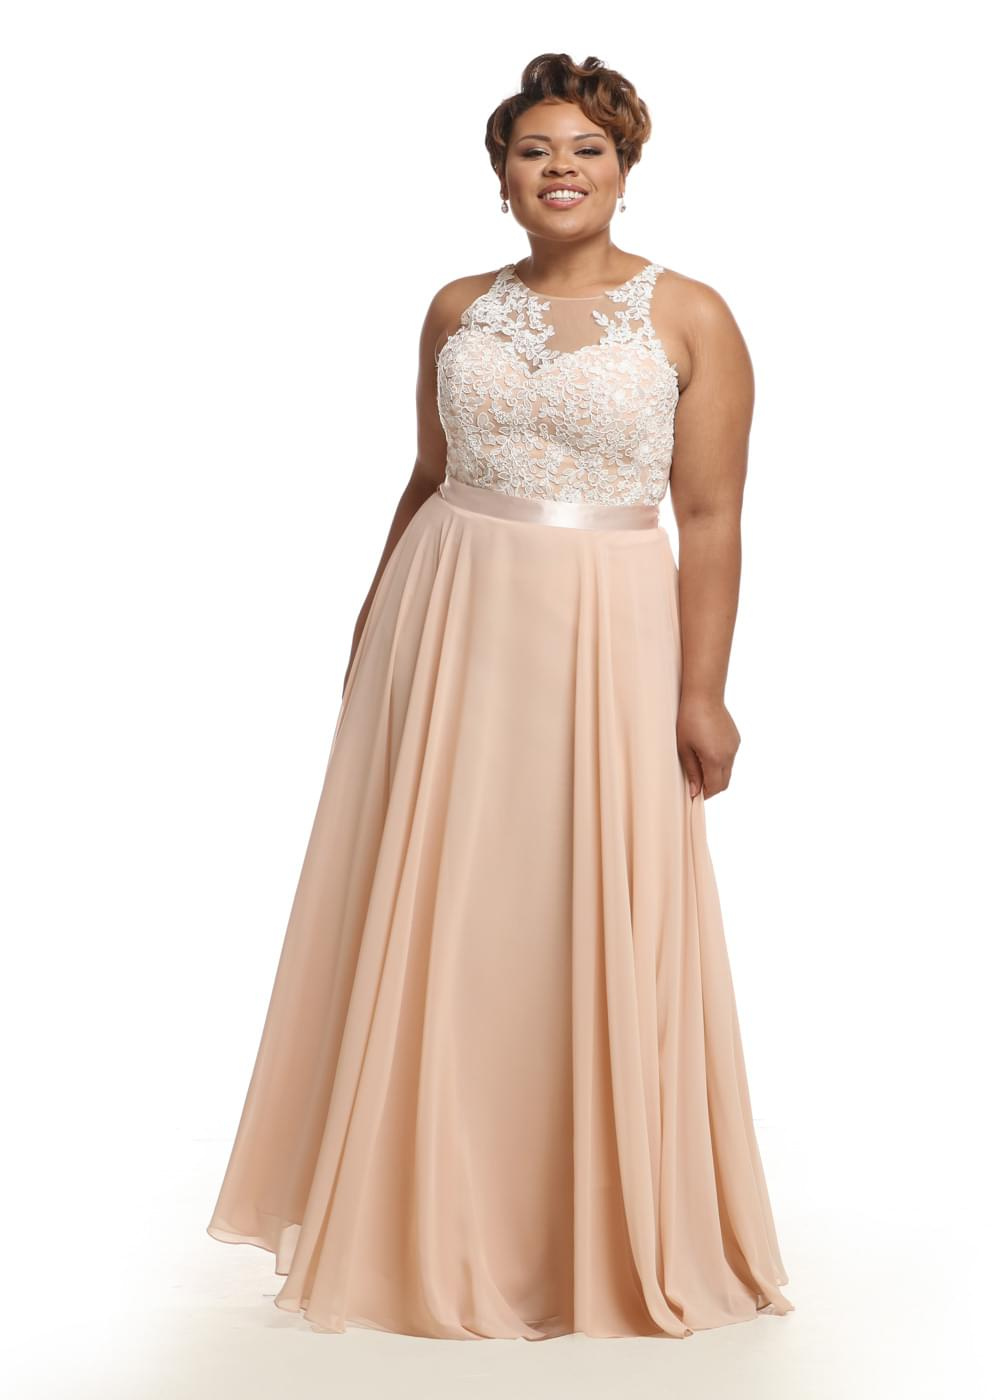 TH-80039 TH Bridesmaid Dresses By Ashdon